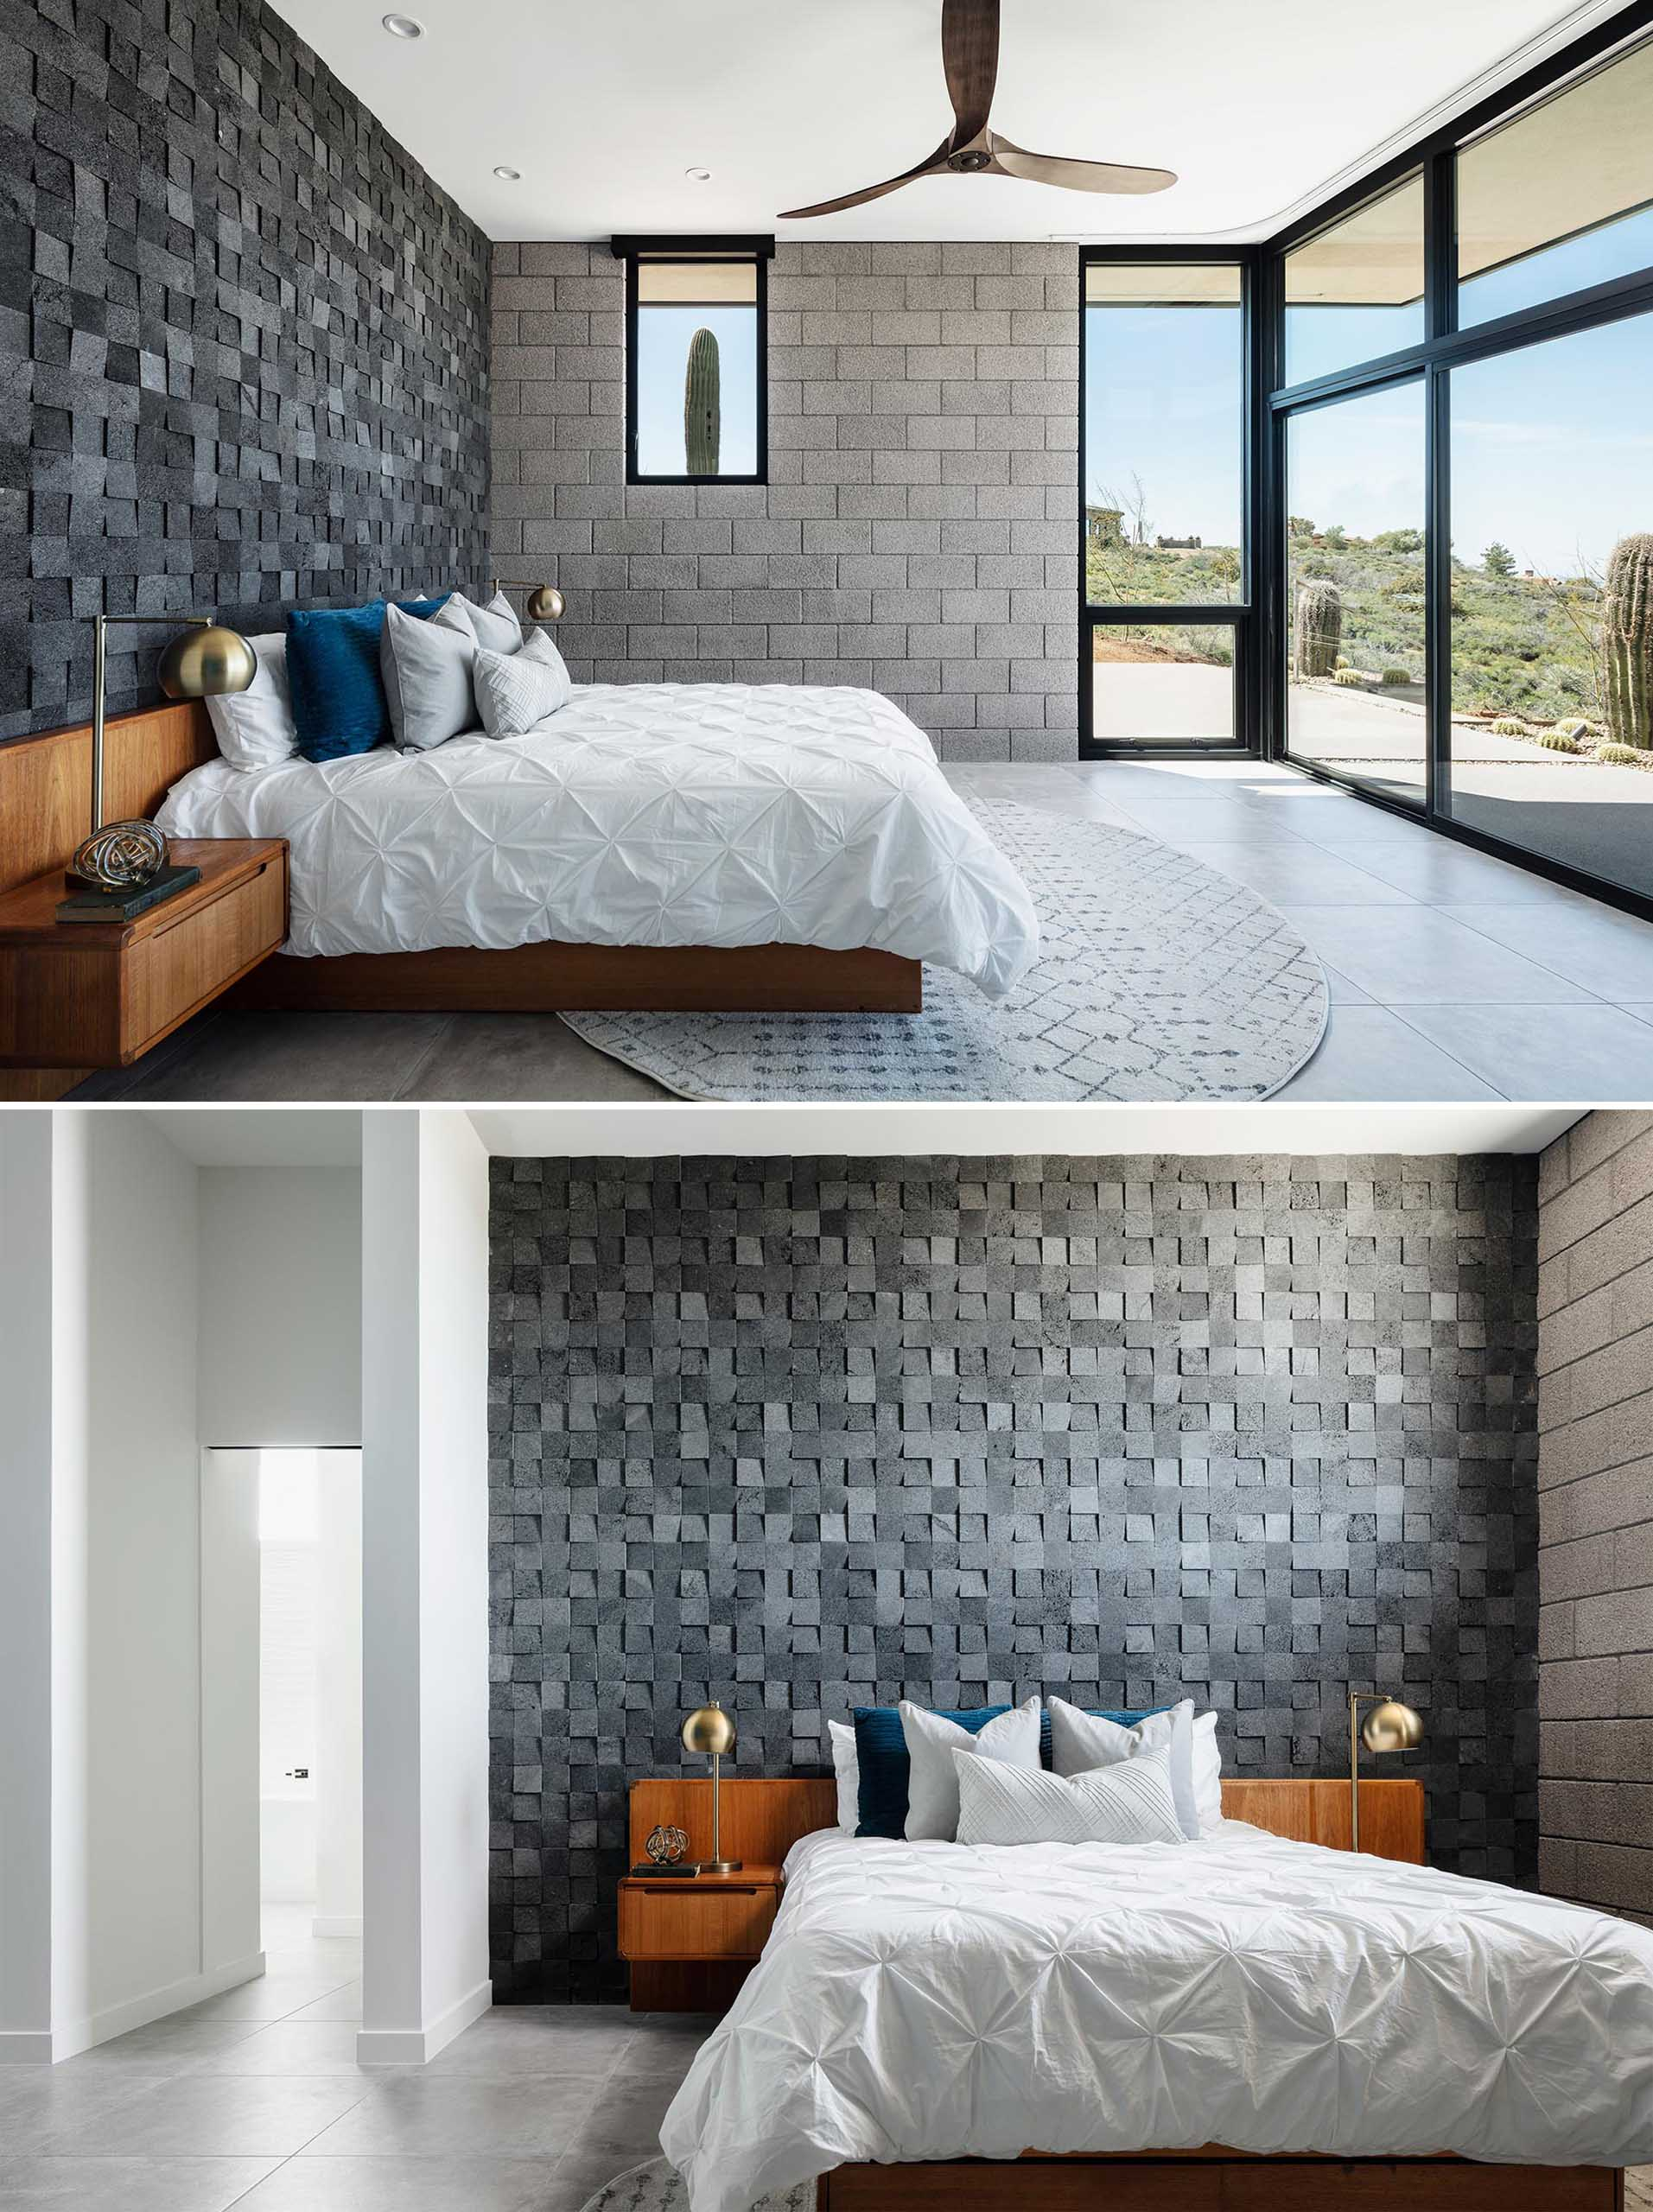 This modern master bedroom suite has views to the desert beyond through the large windows, while the accent wall is made from 3d lava rock tile.